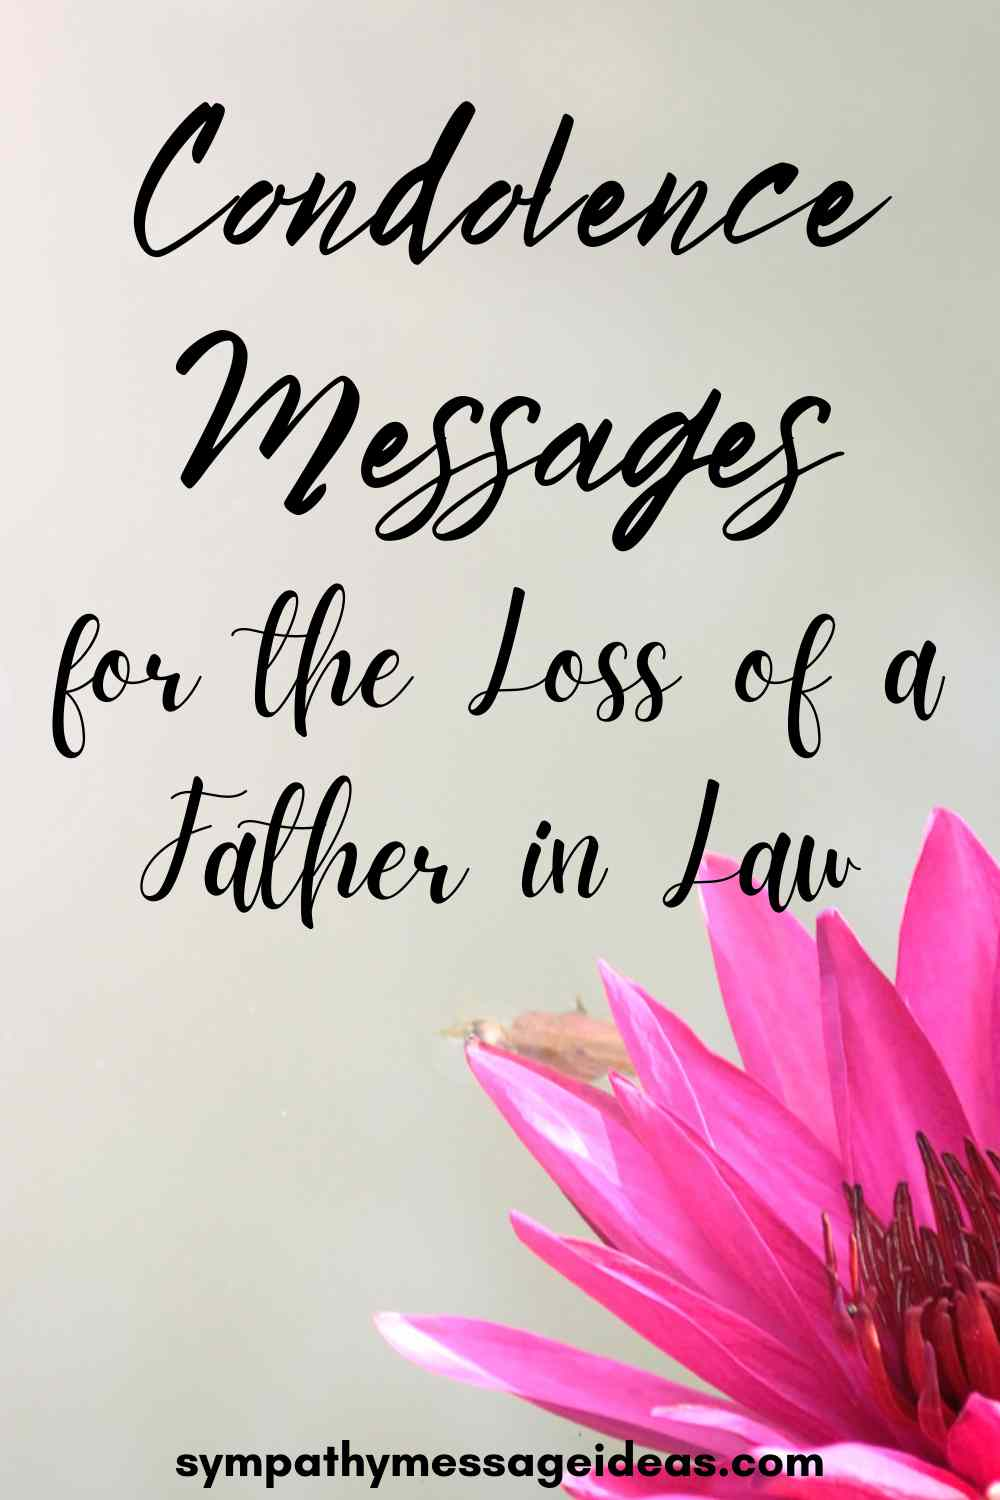 condolence messages for loss of father in law pinterest